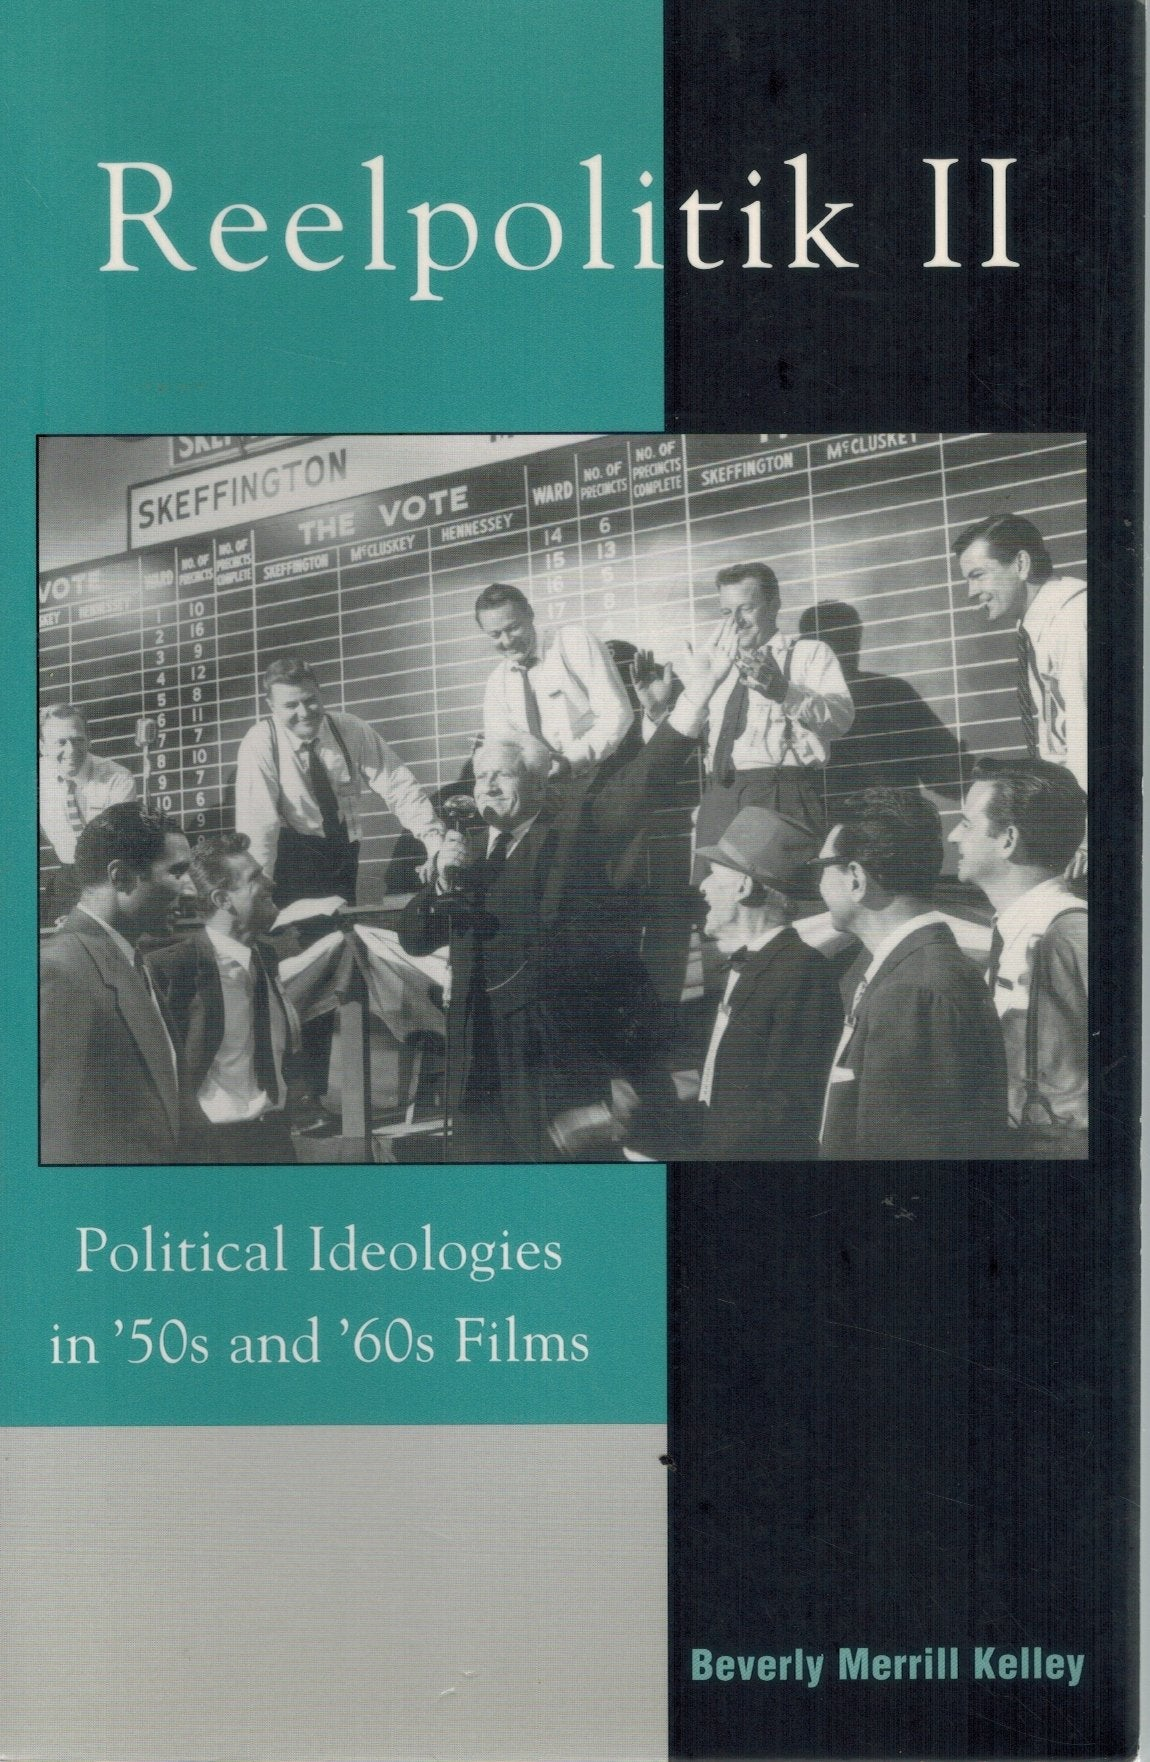 REELPOLITIK II  Political Ideologies in '50s and '60s Films   (Pt.2) - books-new